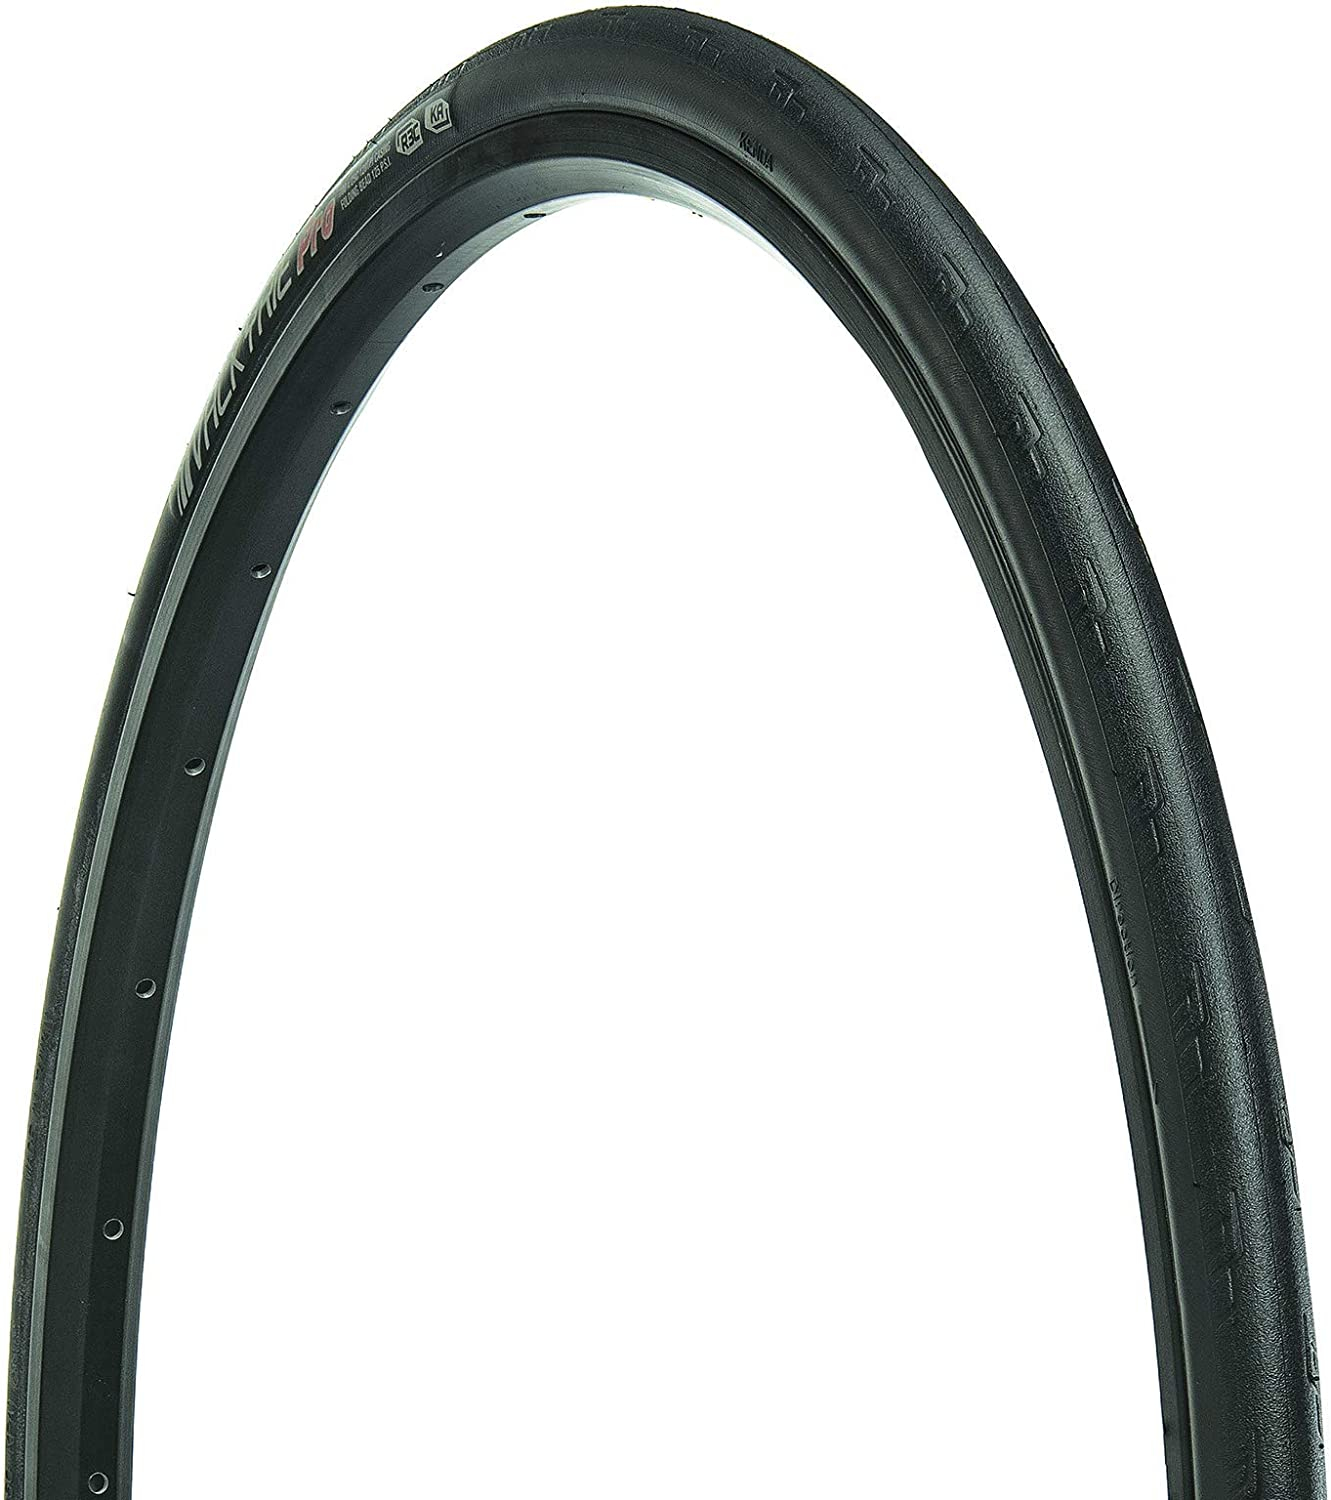 Black 120 KENDA Unisexs Bicycle tire Valkyrie PRO TLR R3C Covers